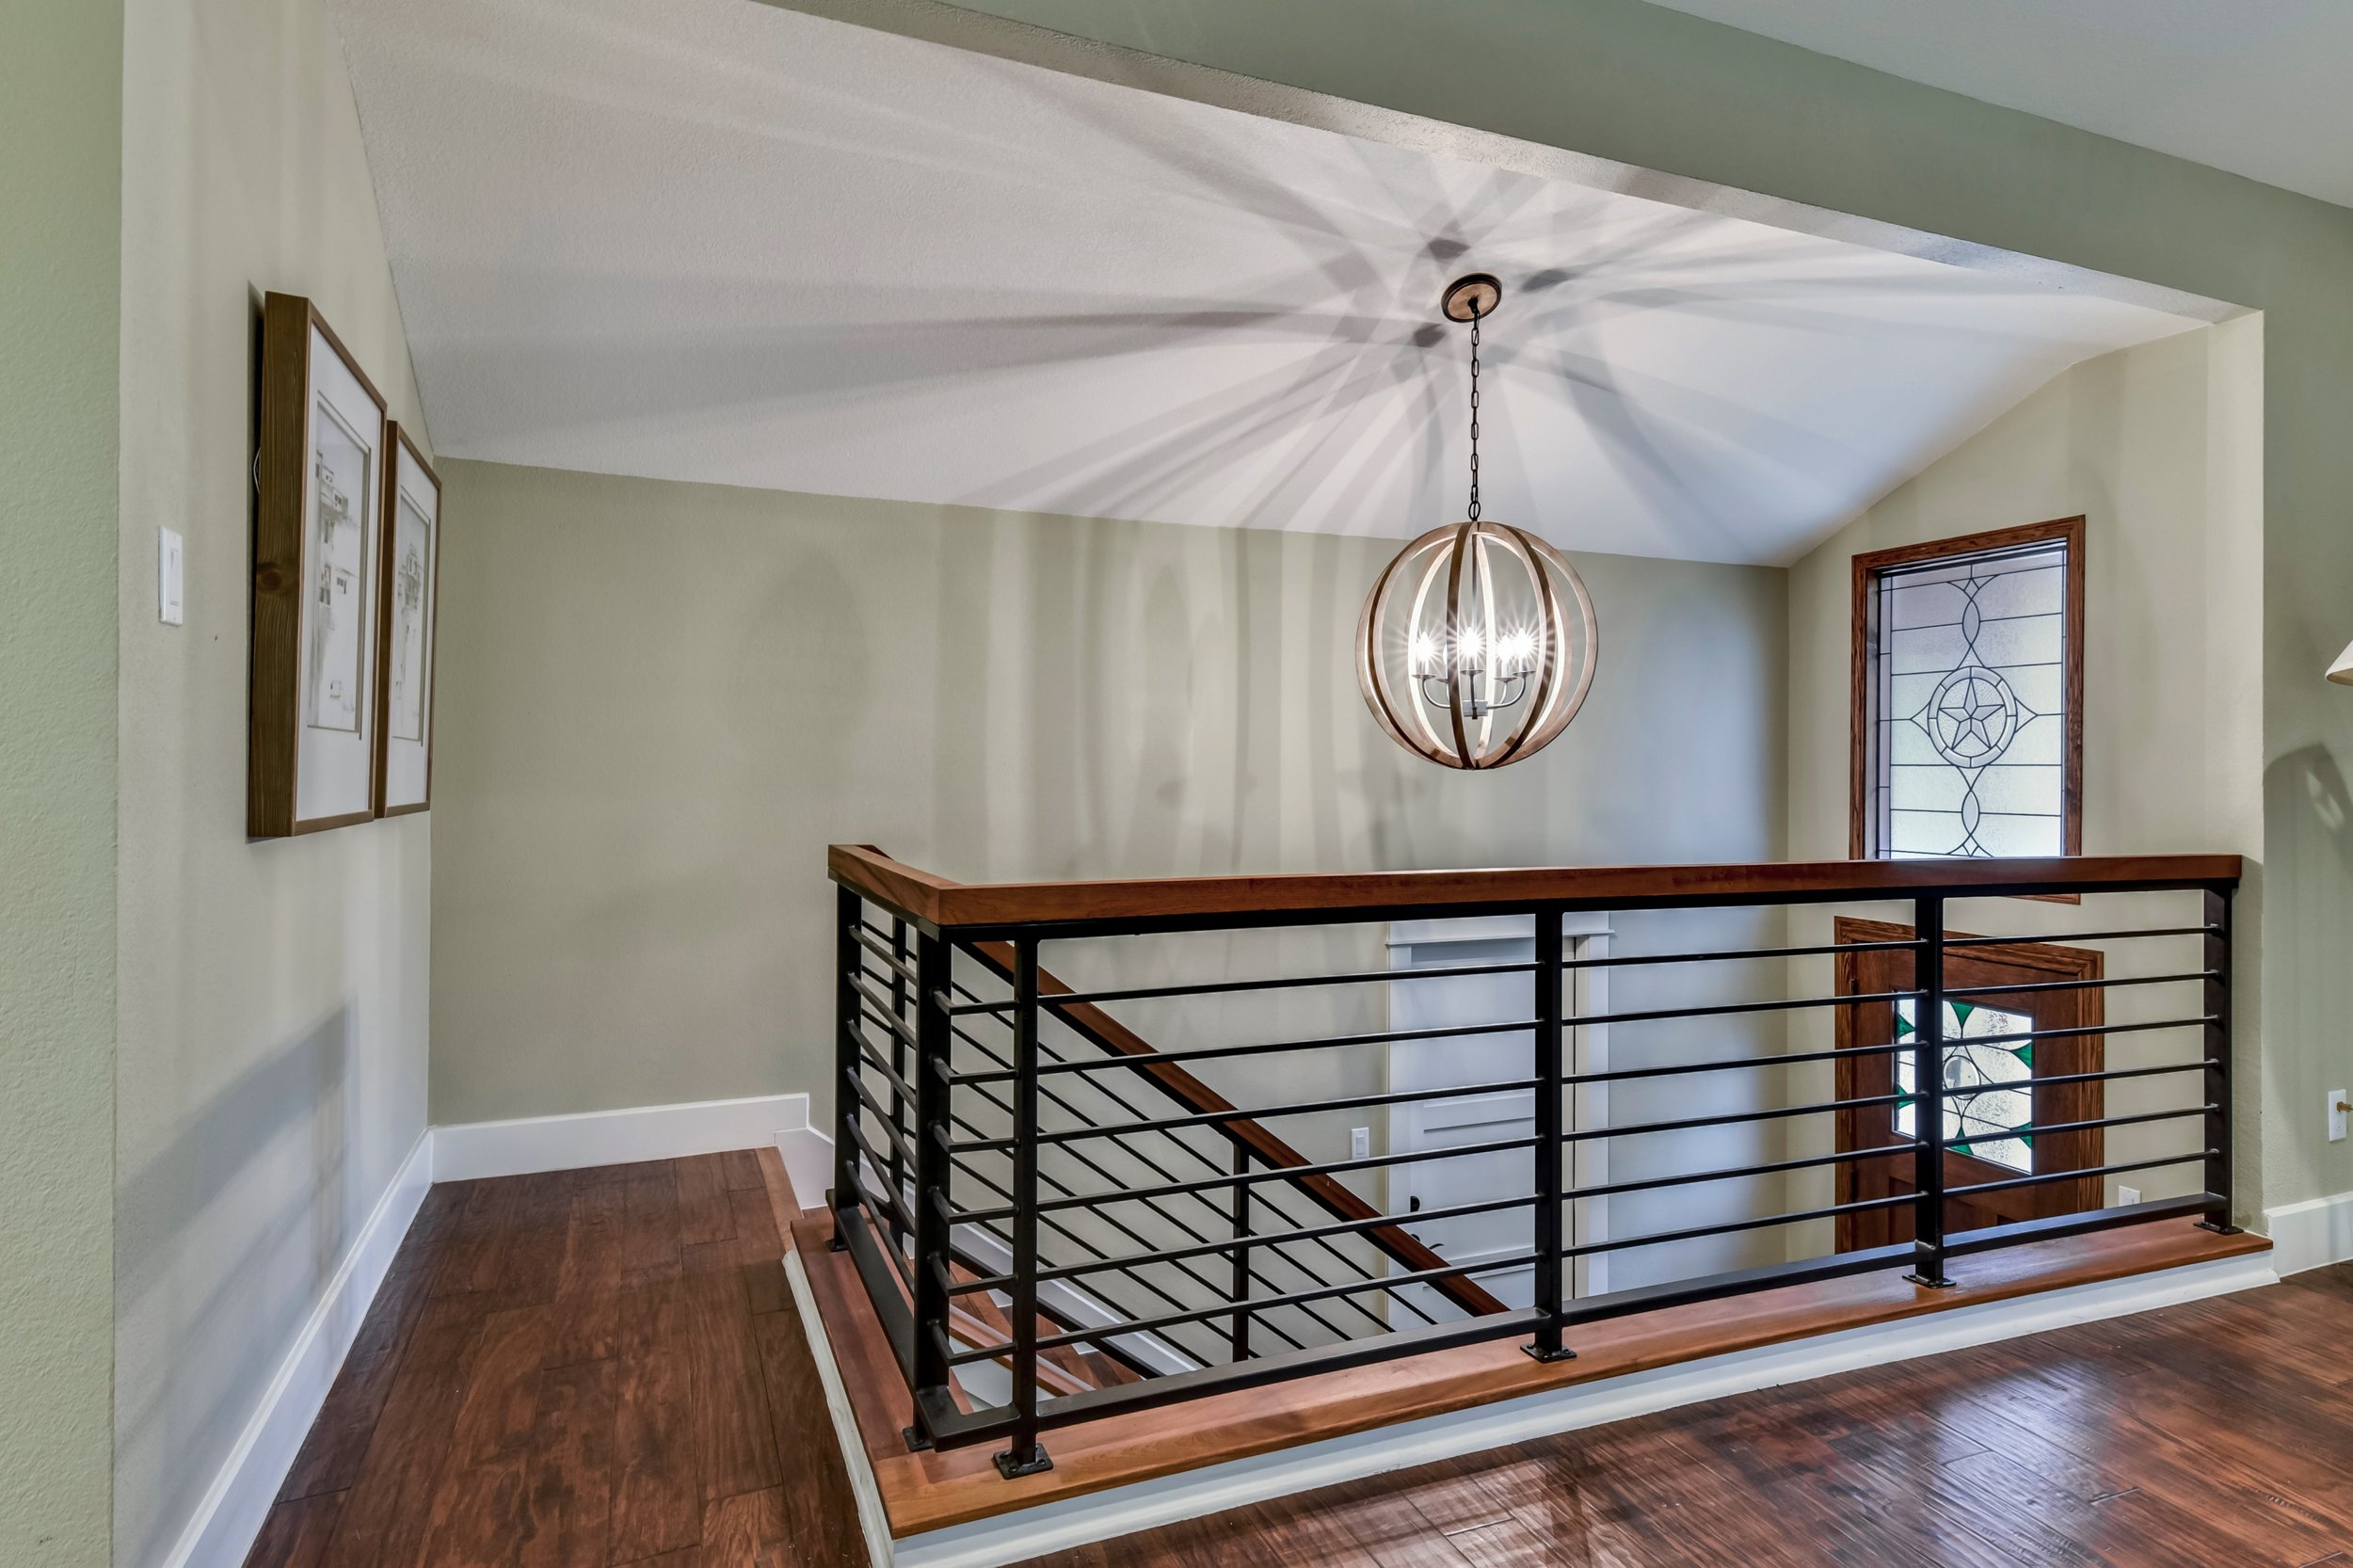 Staircase Chandelier and Stained Glass Window